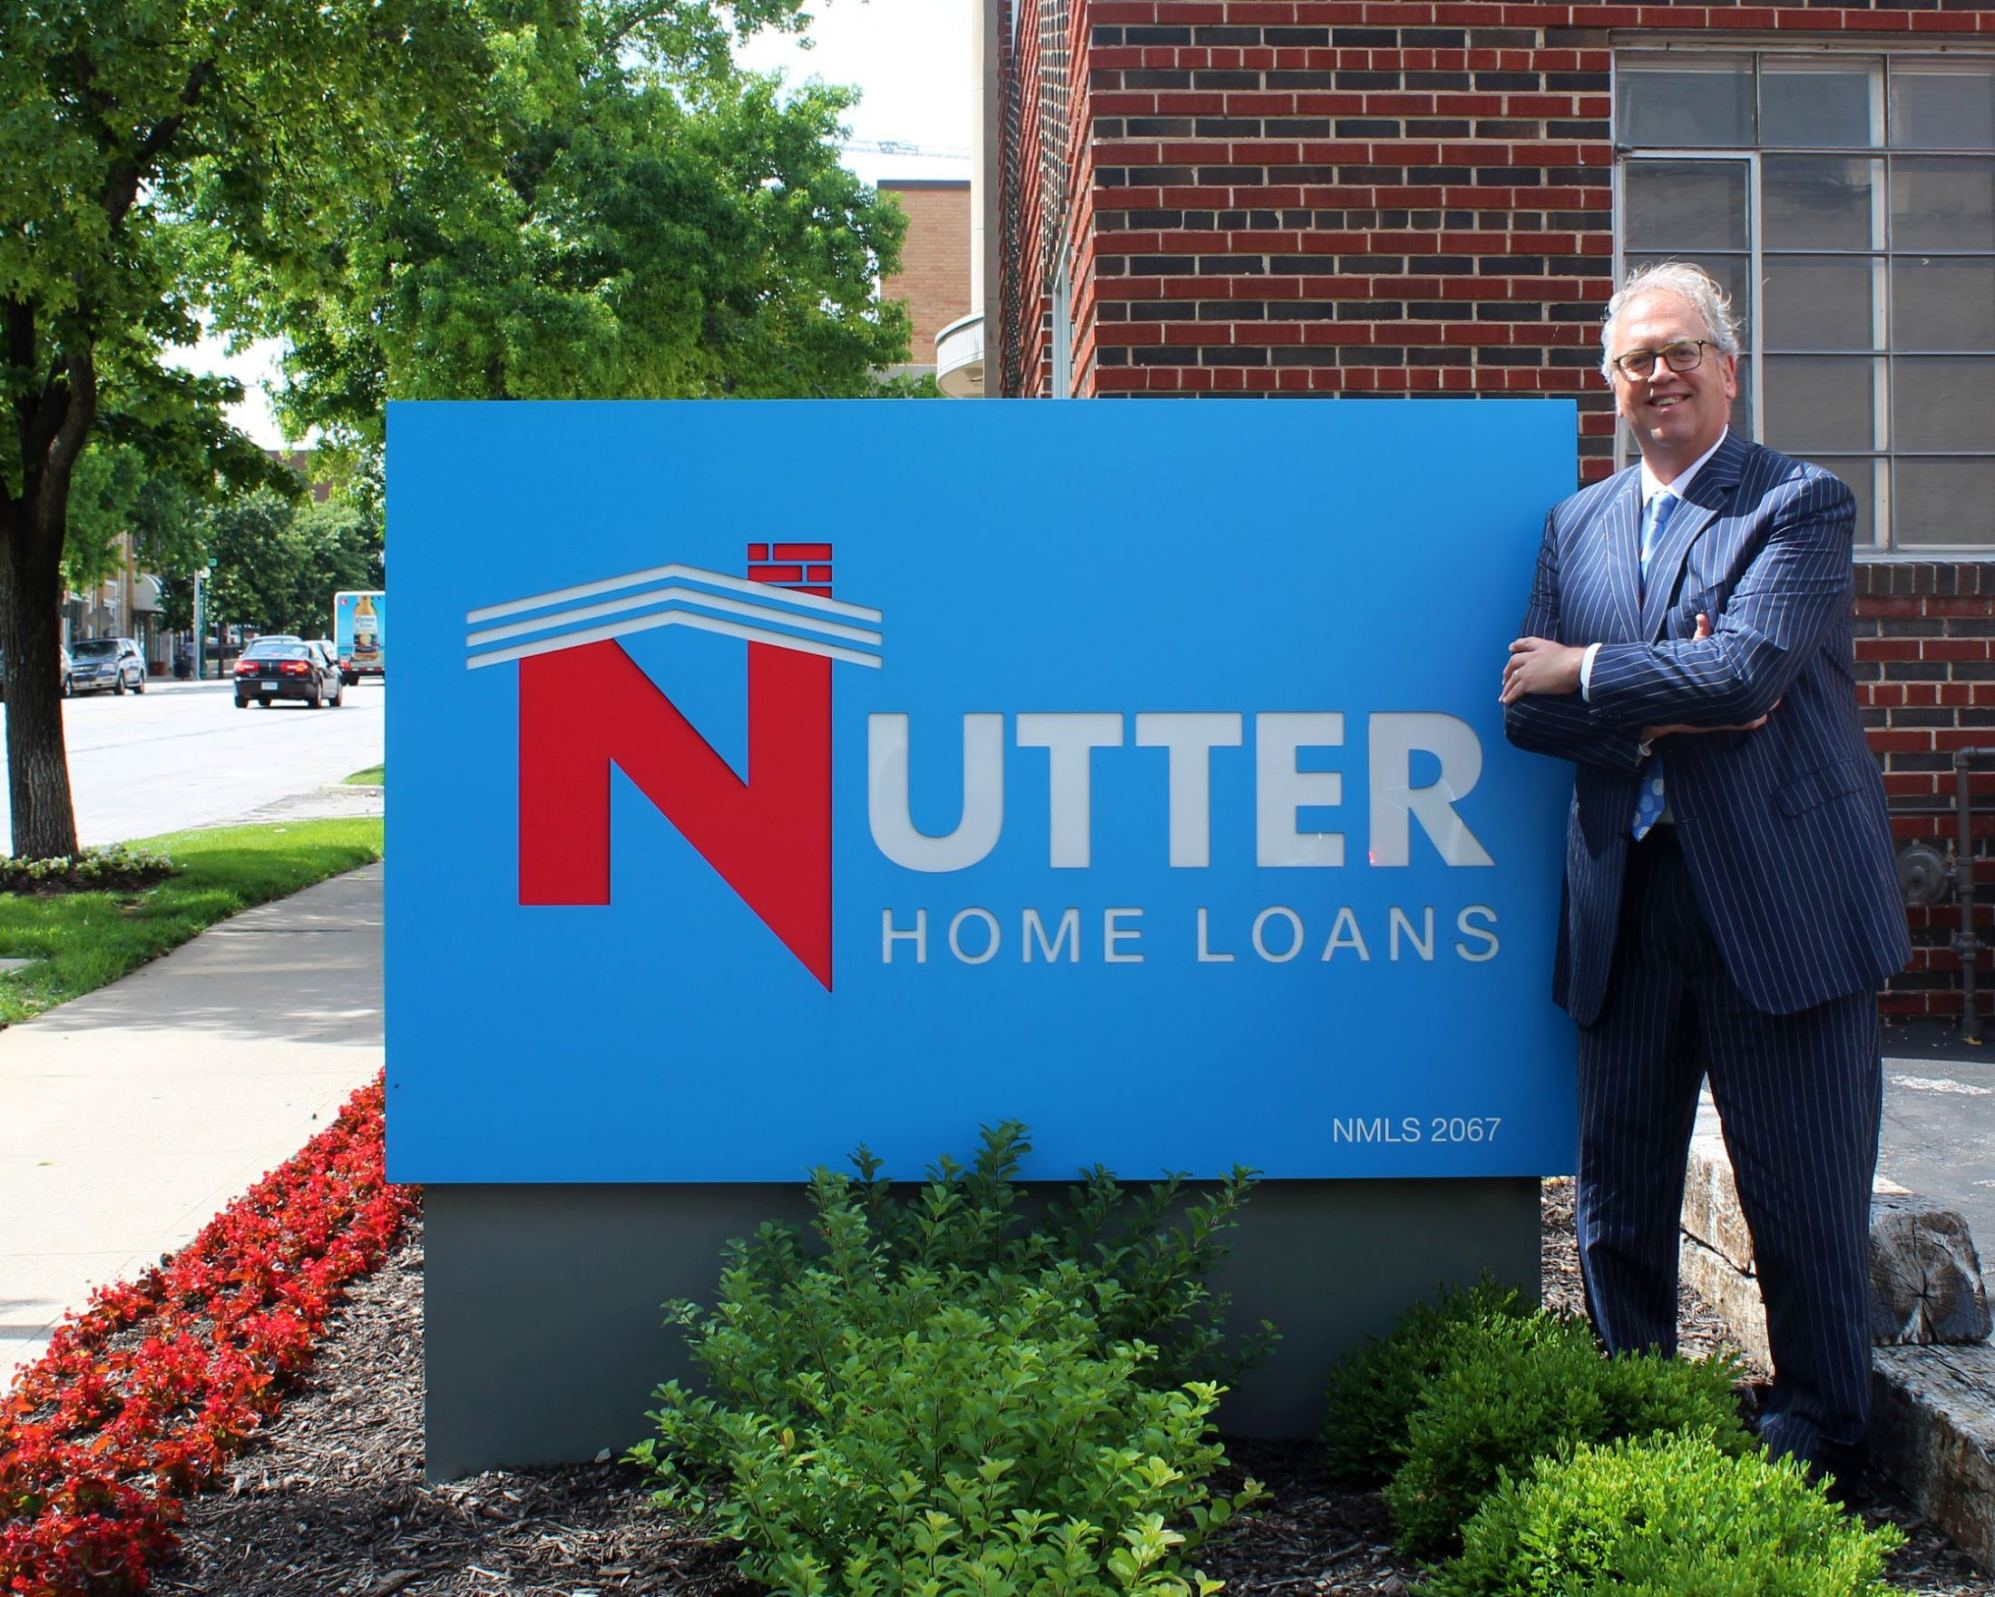 CEO James B. Nutter, Jr. stands by new brand - Nutter Home Loans.